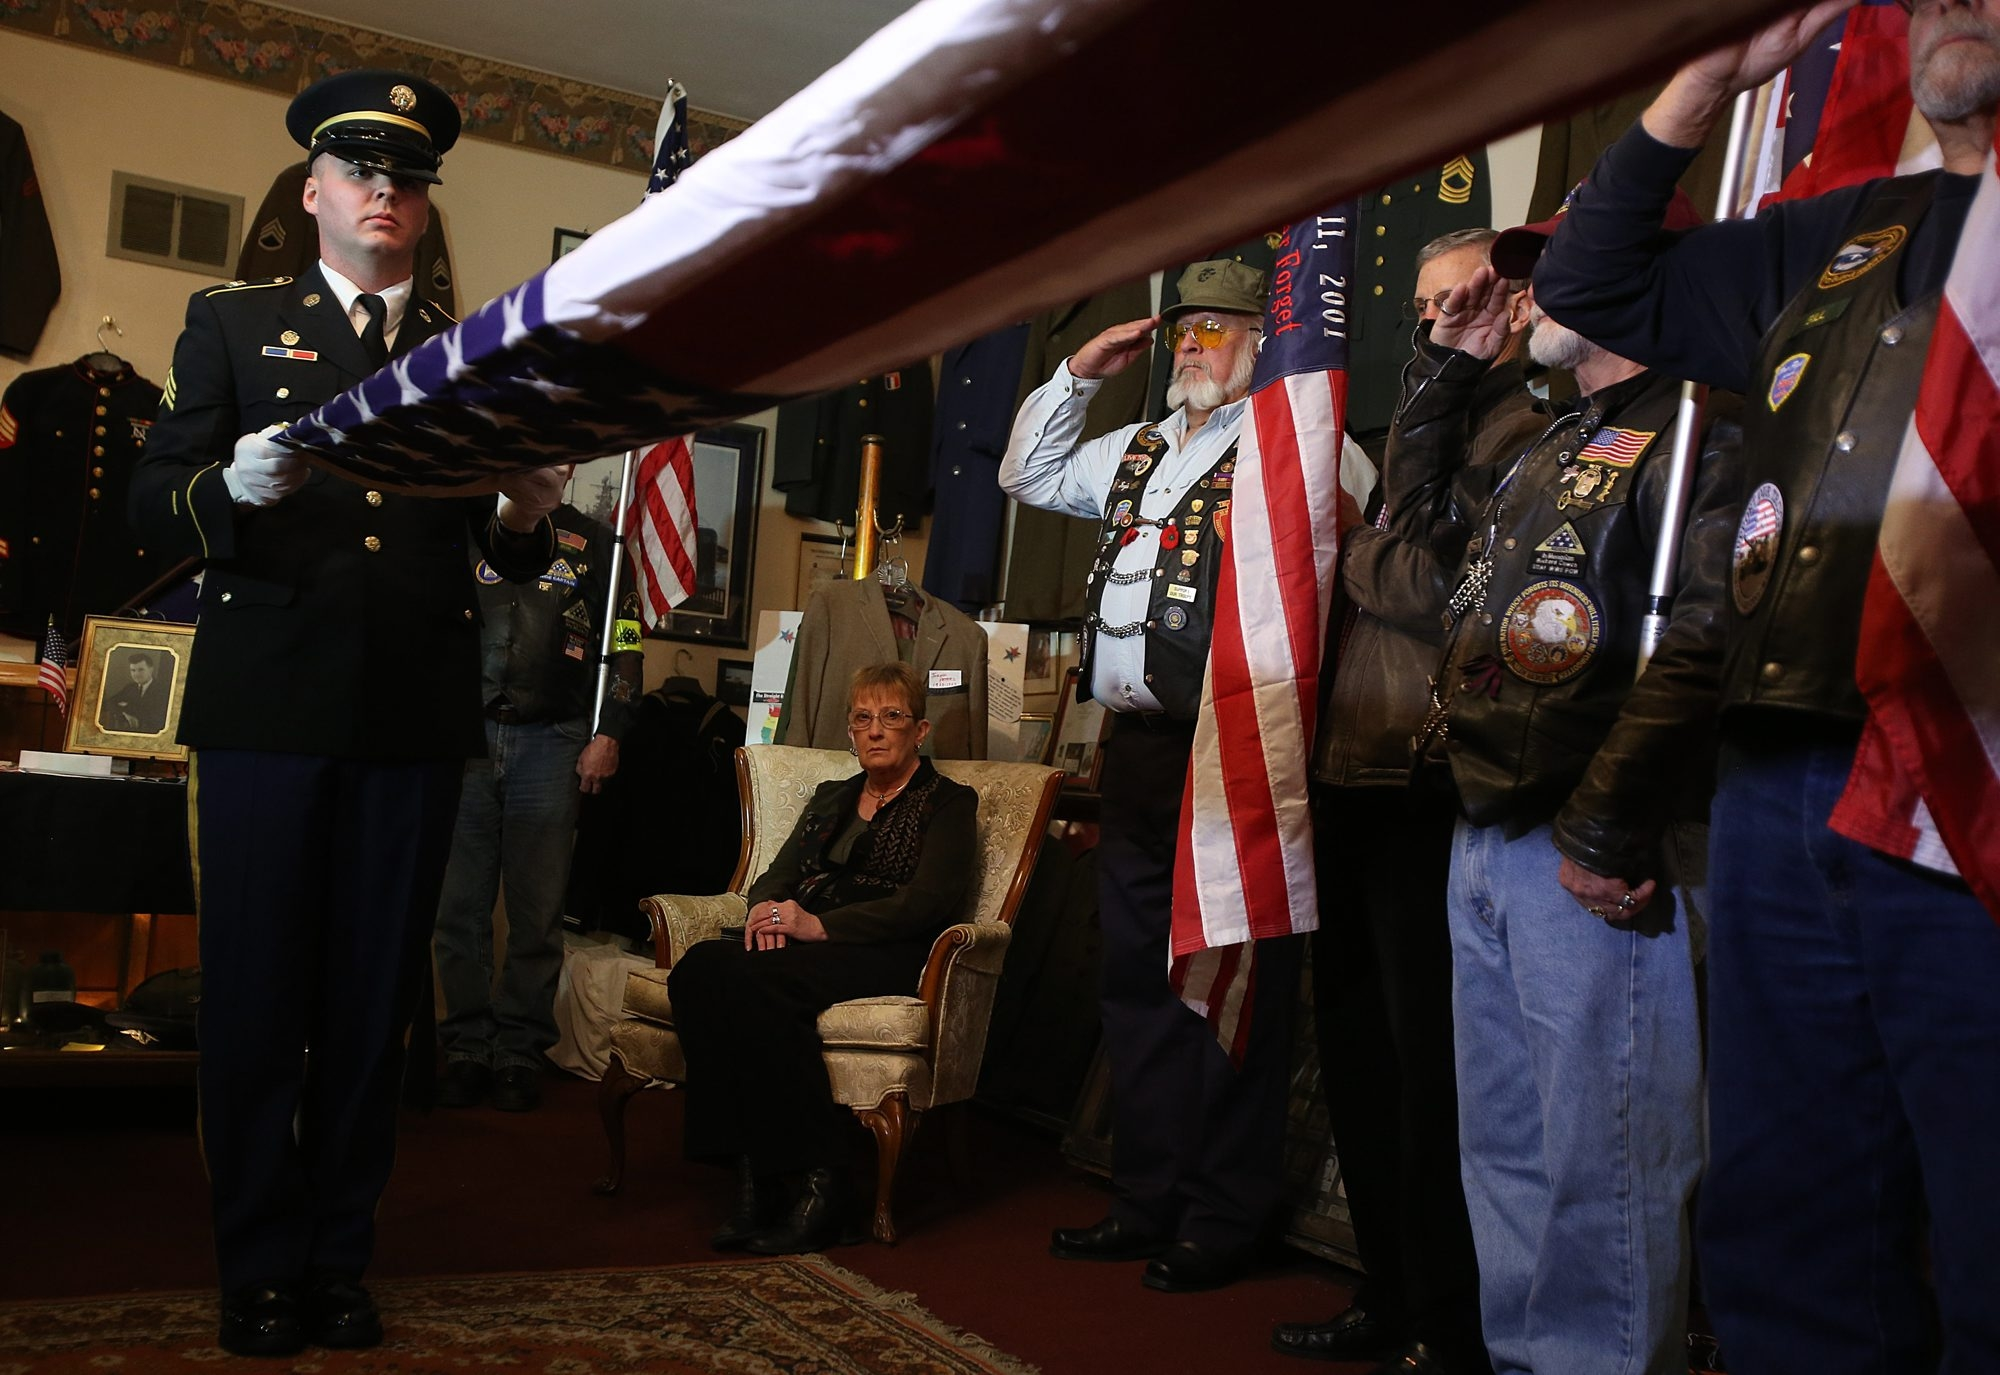 Nancy Cederman, of Akron, niece of Staff Sgt. Kendall Morrow, watches as honor guard folds U.S. flag while Patriot Guard Riders salute in Purple Heart ceremony Monday. Her uncle died  in action in 1943; the medal had been missing but was found in Rochester. Photo gallery at BuffaloNews.com.